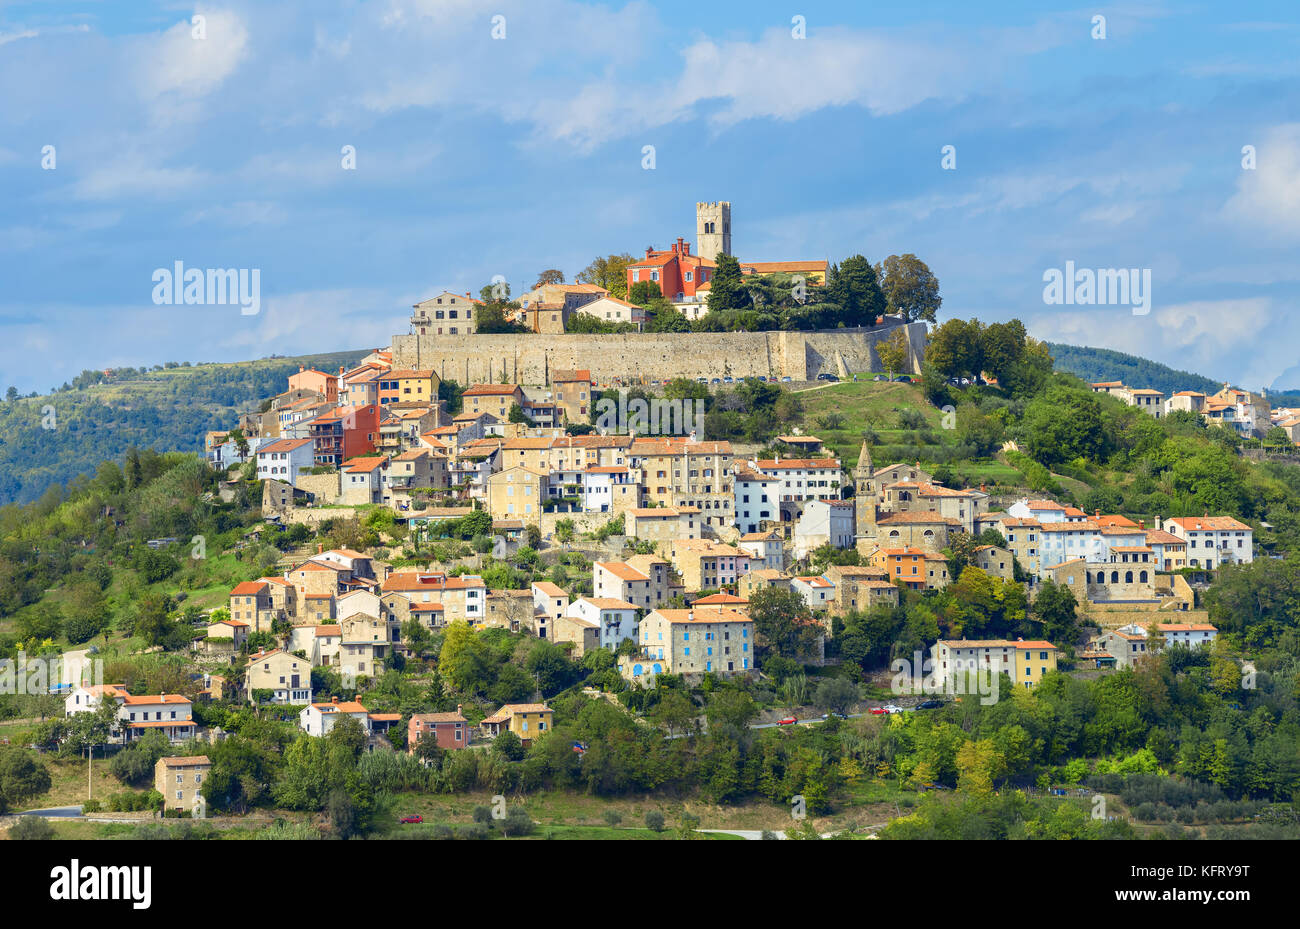 View of famous small old town Motovun on picturesque hill. Istria, Croatia - Stock Image